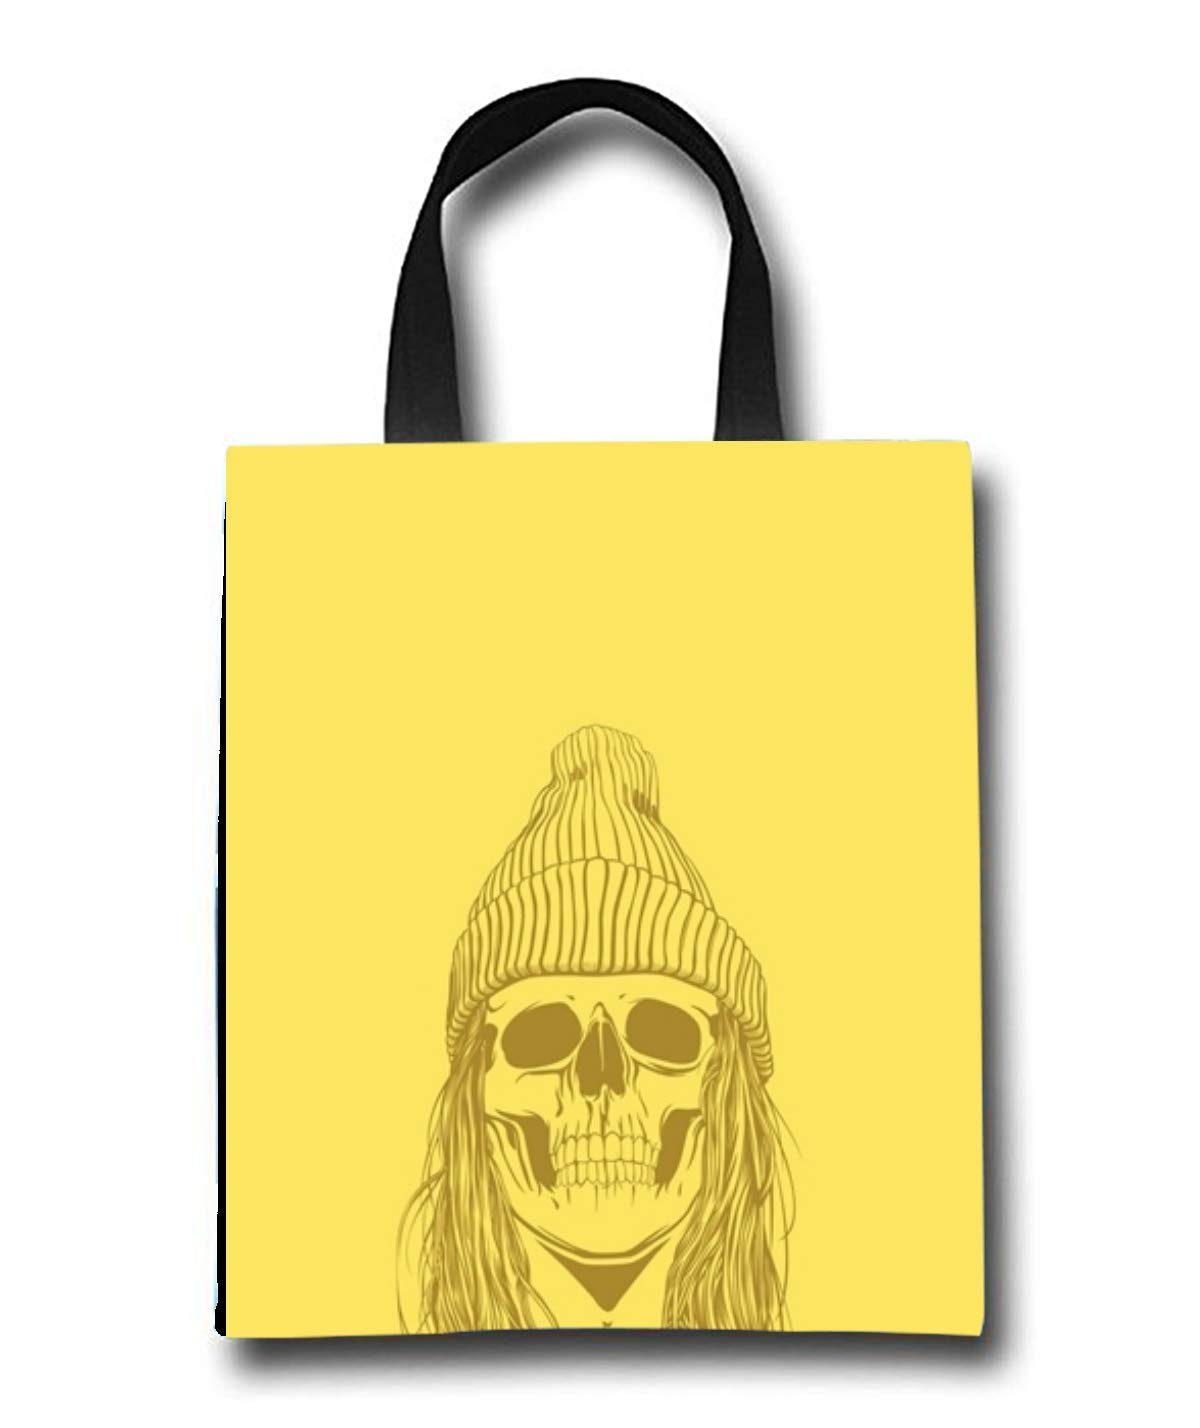 Skull Hat Beach Tote Bag - Toy Tote Bag - Large Lightweight Market, Grocery & Picnic